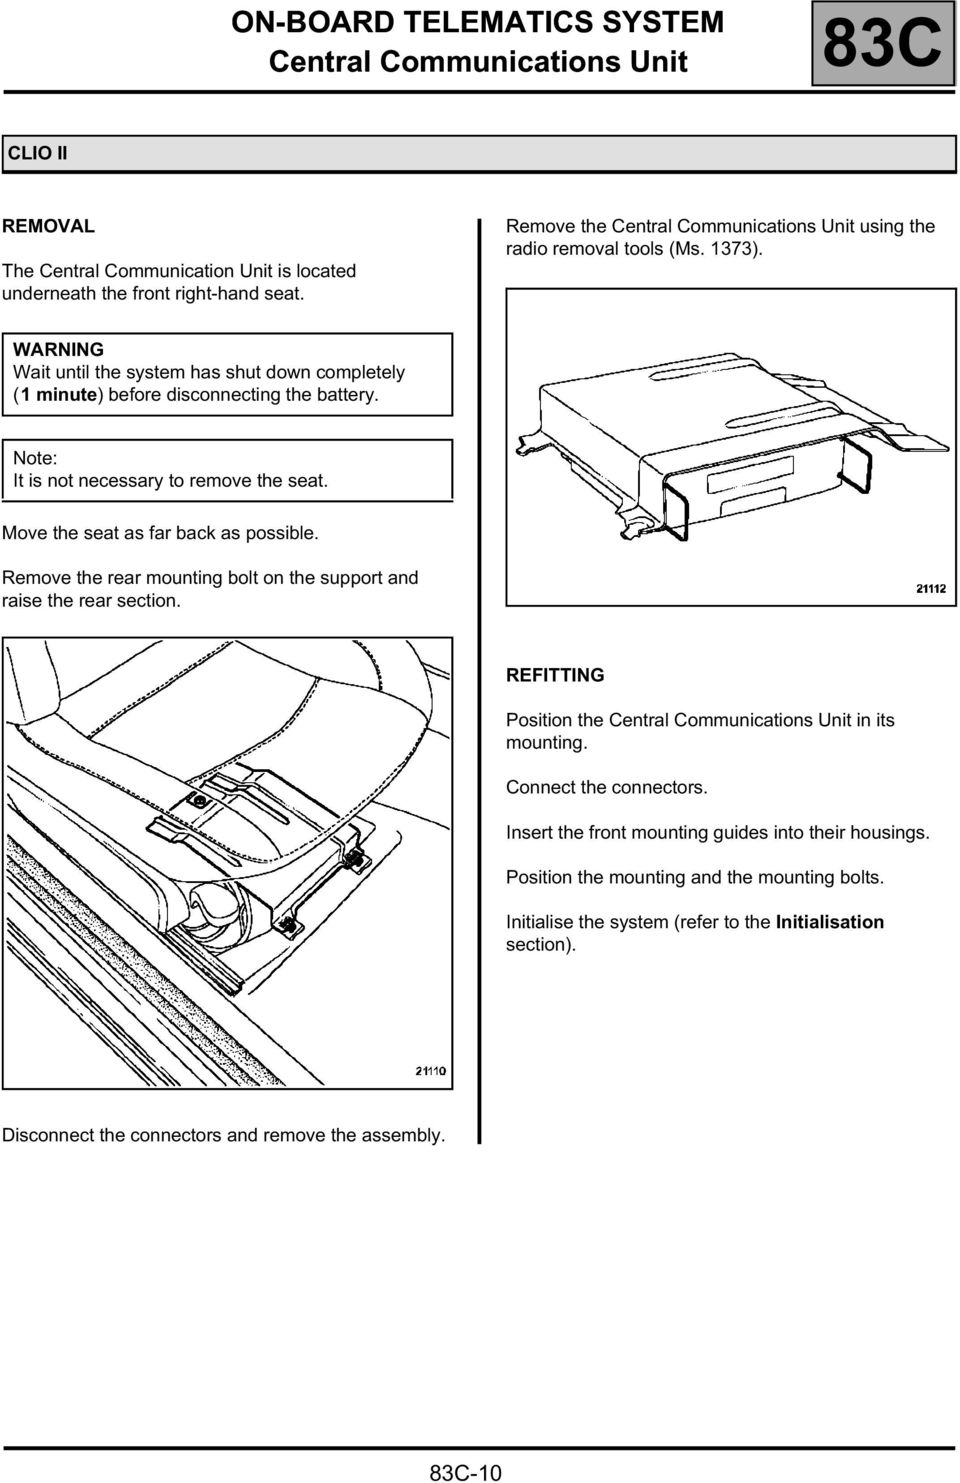 Technical Note 3729a Pdf Tomtom Link 300 Wiring Diagram It Is T Necessary To Remove The Seat Move As Far